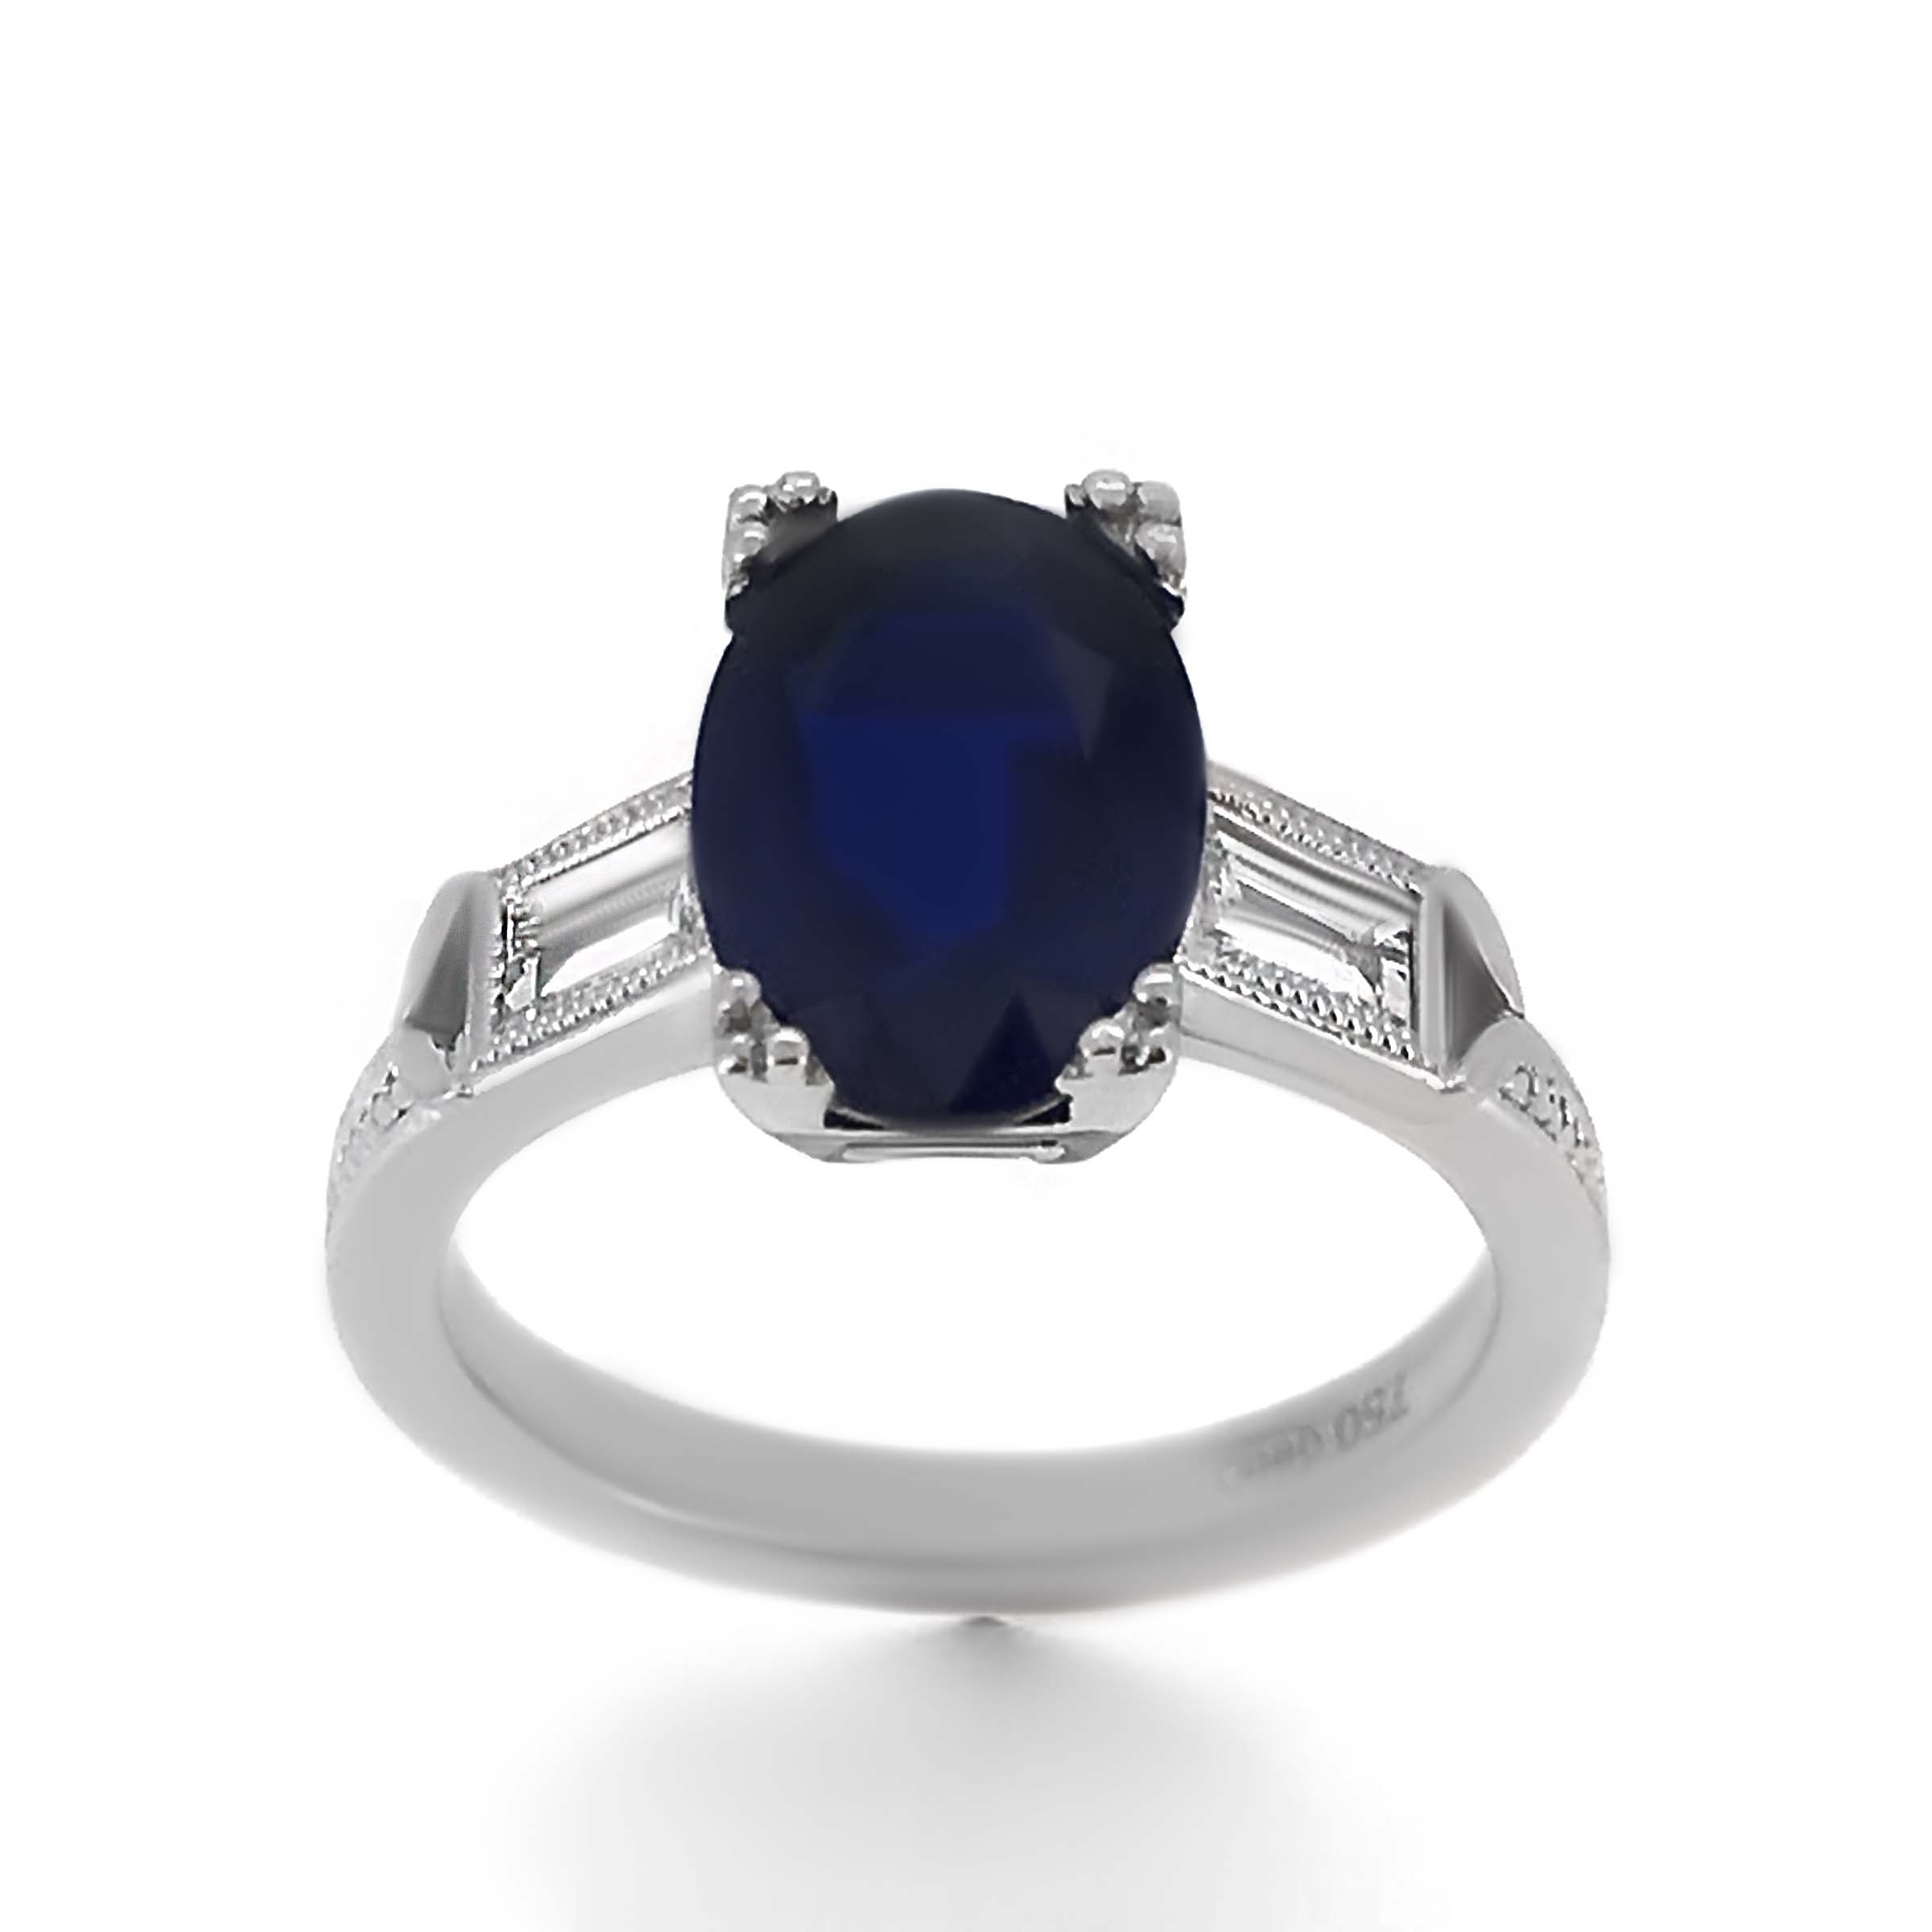 Vintage Style Sapphire Engagement Ring – Haywards Of Hong Kong Within Latest Vintage Style Sapphire Engagement Rings (View 15 of 15)